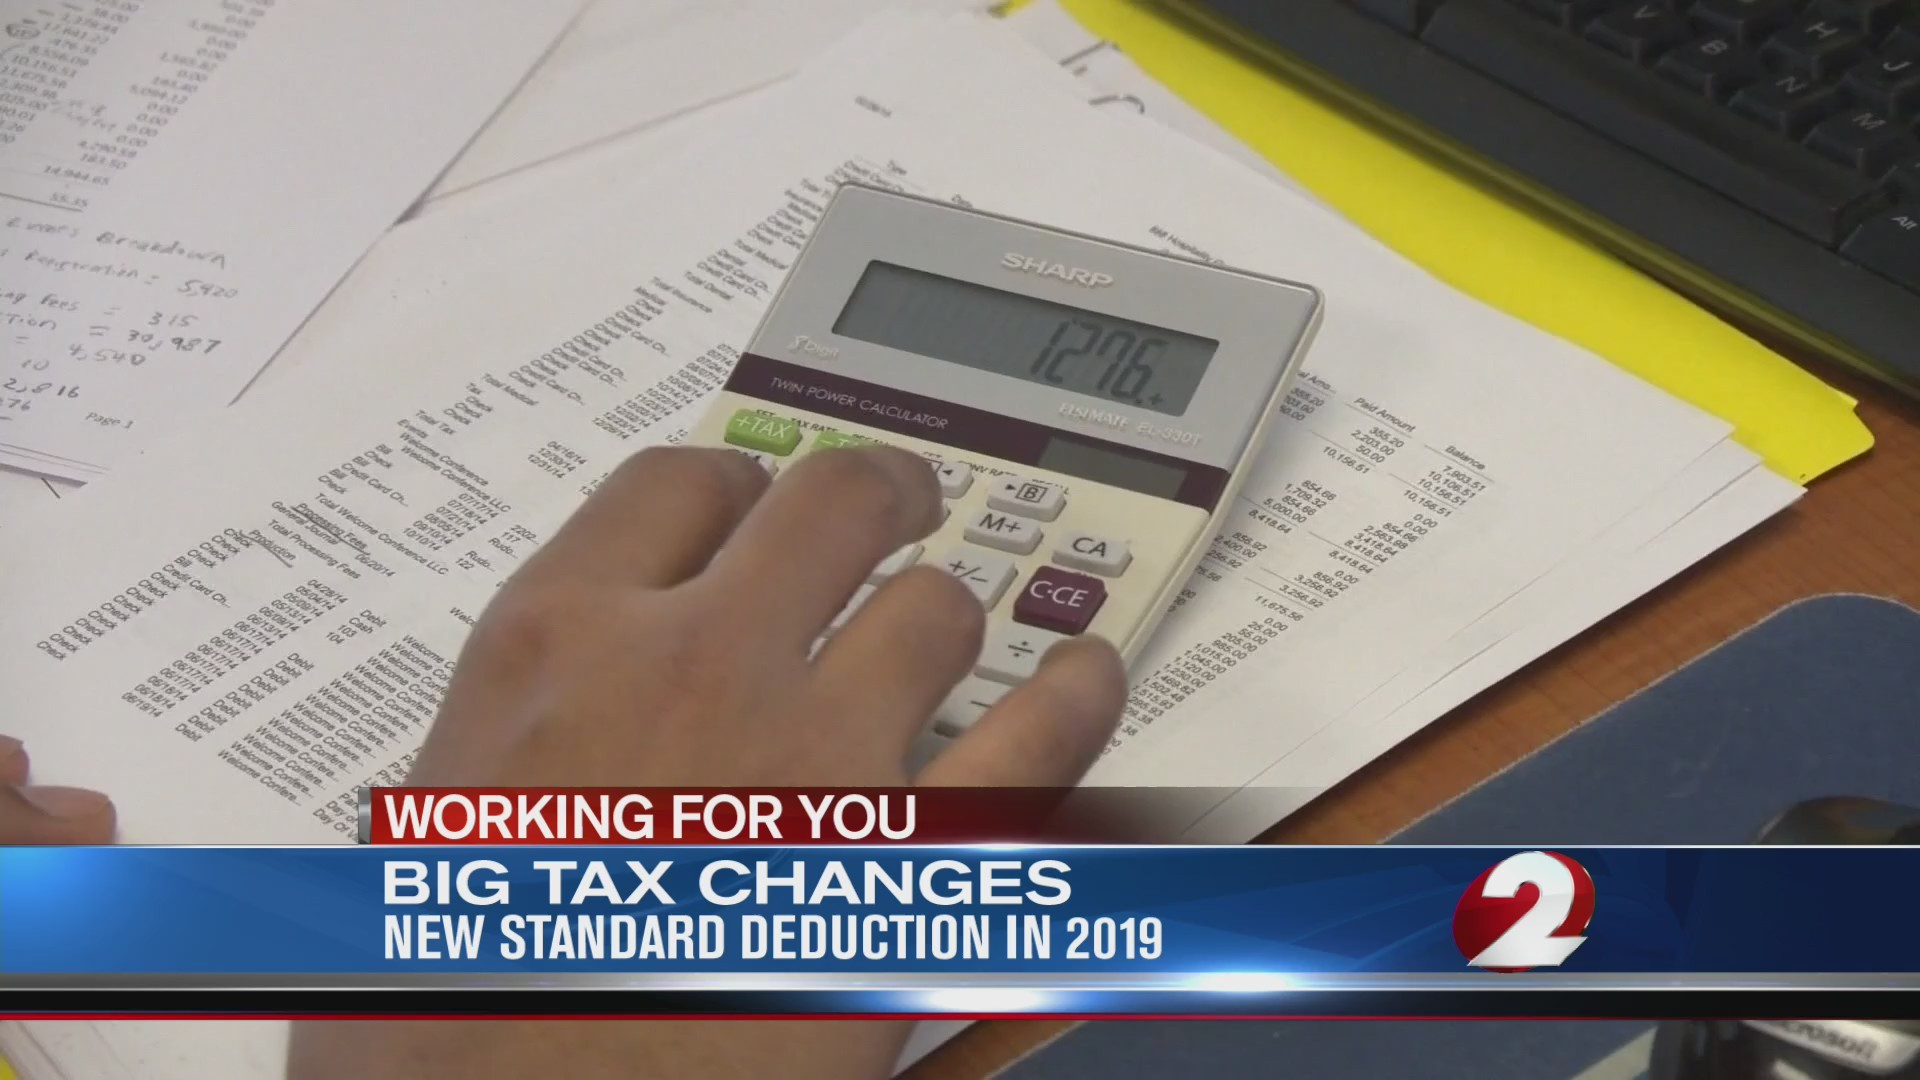 Big tax changes, new standard deduction in 2019